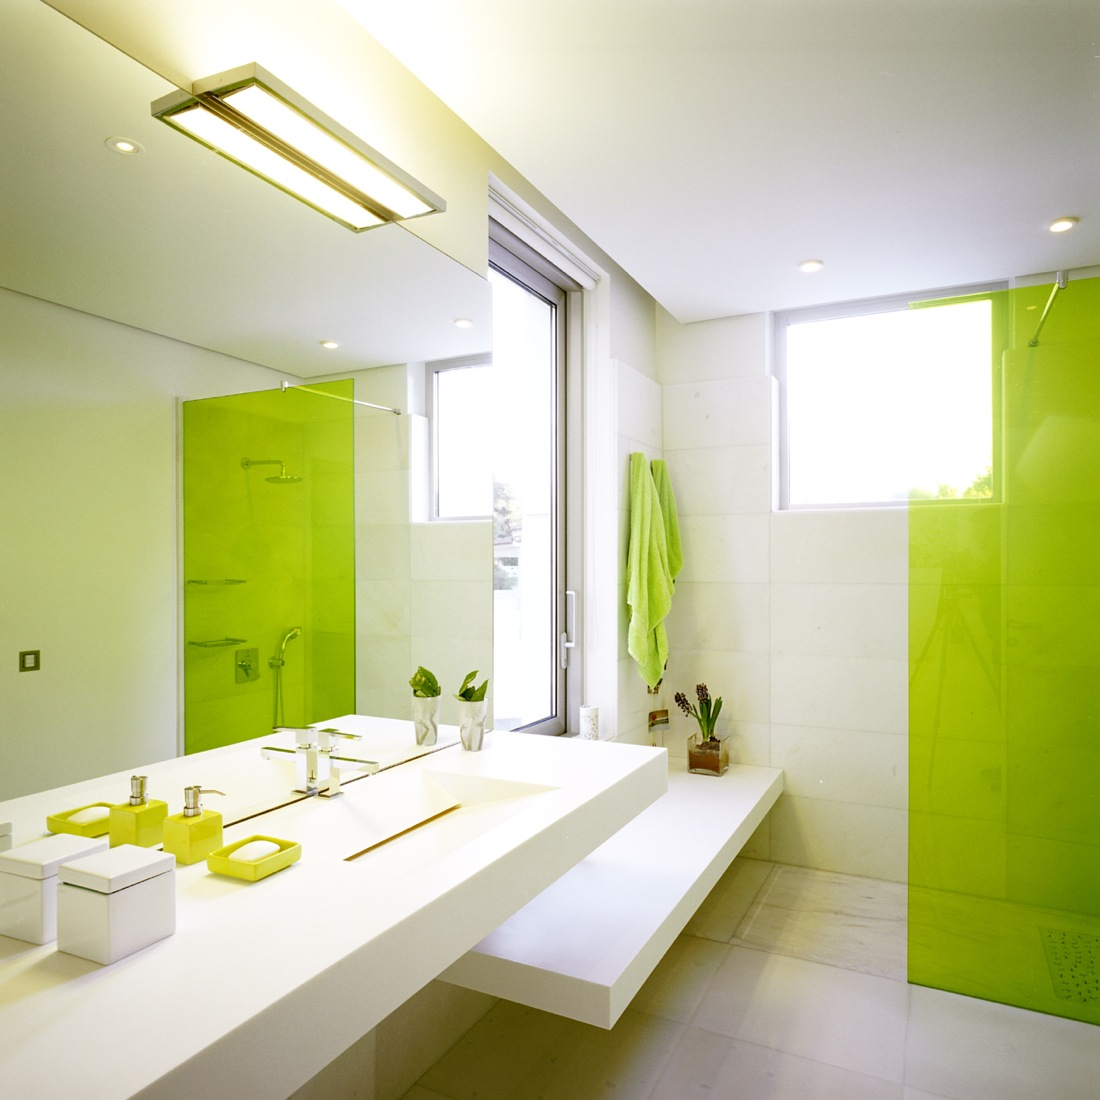 Minimalist bathroom designs home designs project Interior design ideas for small bathrooms